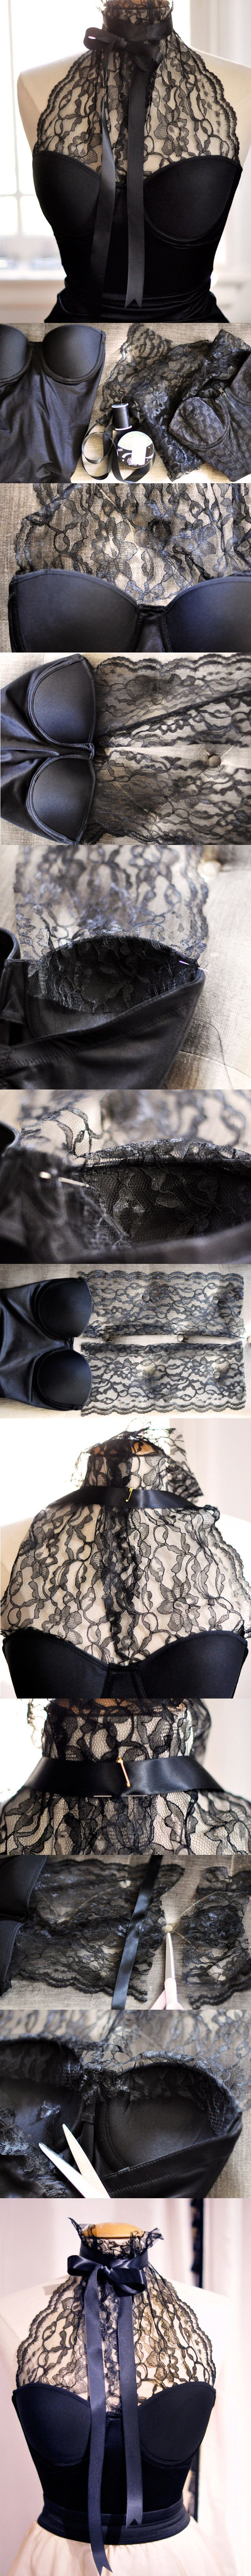 Interesting Craft Ideas With Lace http://@Corey Reece Reece Reece Hagler I think we could do something like this.